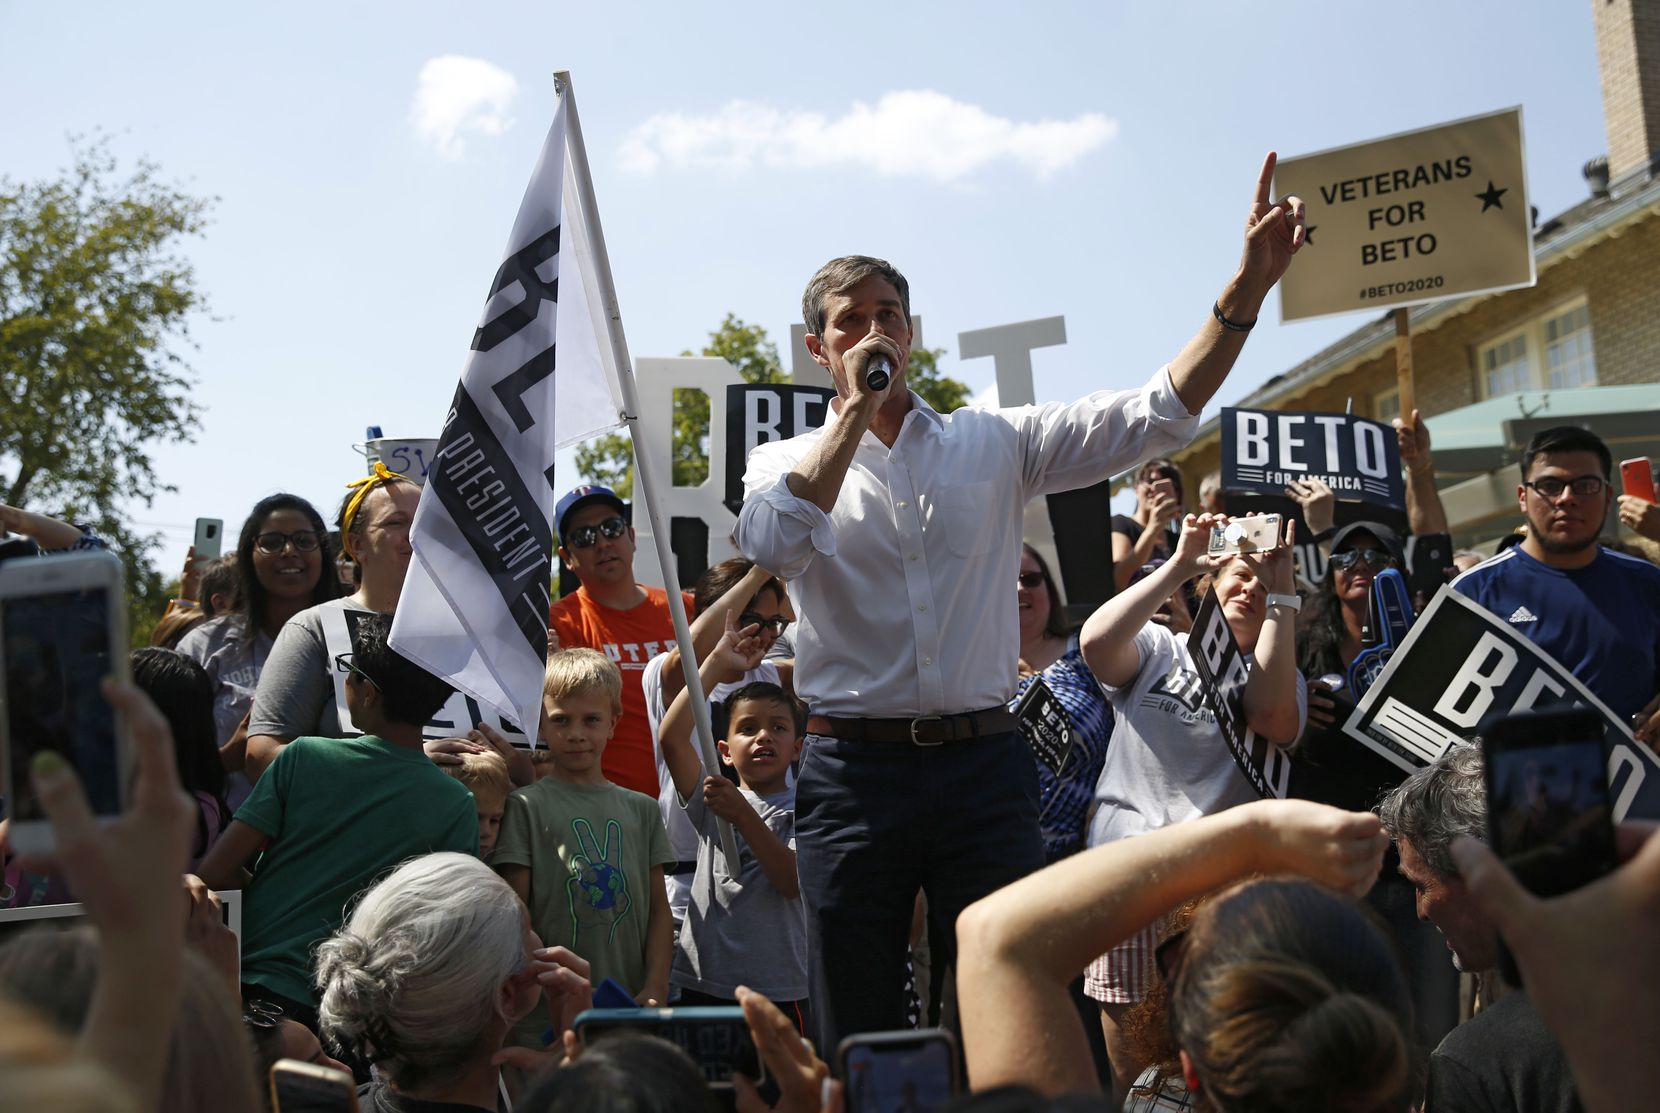 Democratic presidential candidate Beto O'Rourke spoke at a campaign event at Haggard Park in Plano on Sunday.